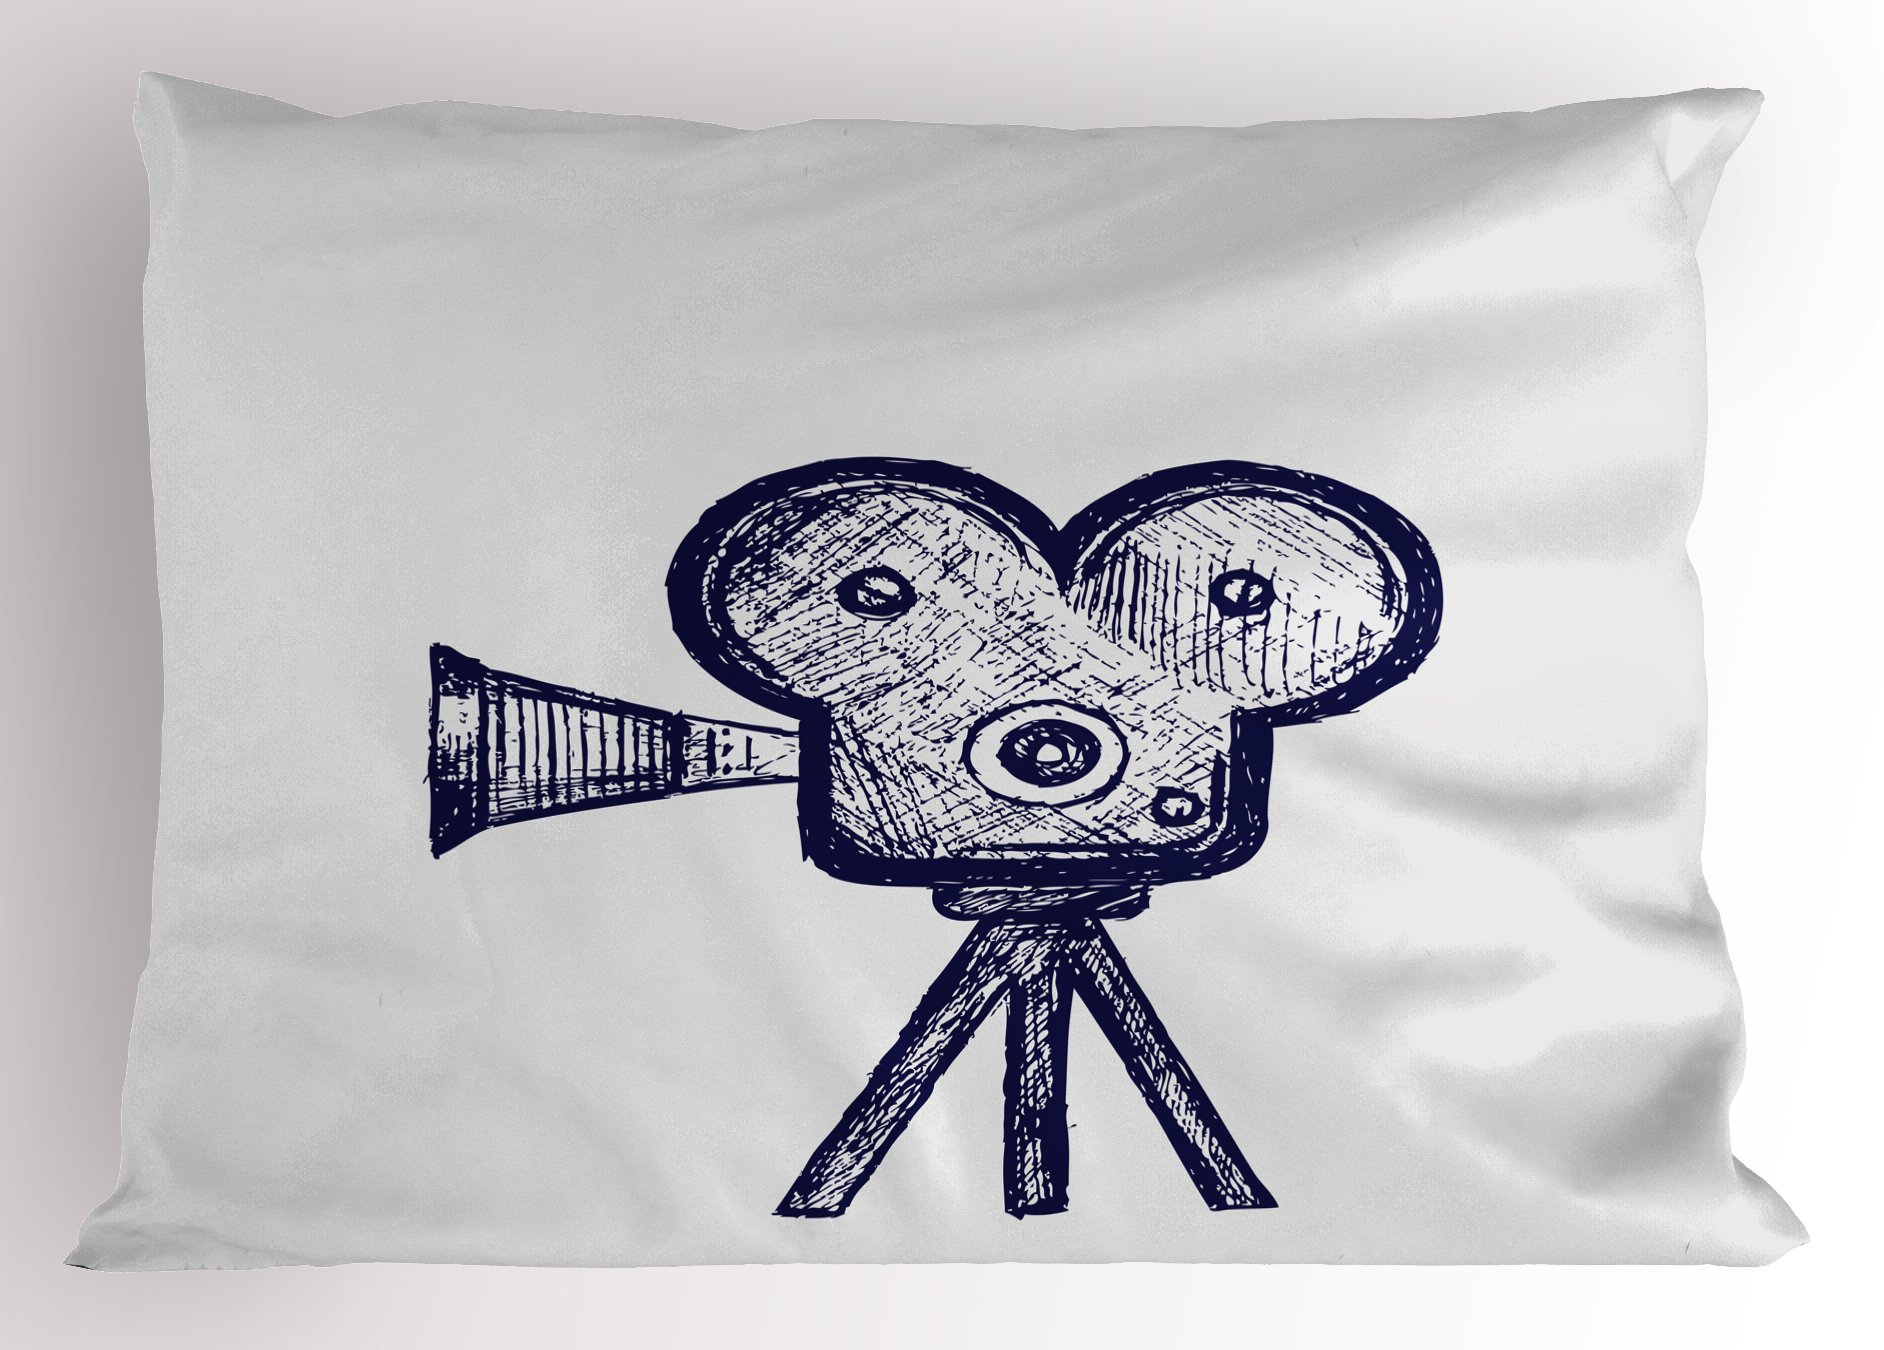 Ambesonne Movie Theater Pillow Sham, Hand Drawn Sketch of a Video Projector in Blue Tones Cinema Symbol, Decorative Standard Queen Size Printed Pillowcase, 30 X 20 inches, Violet Blue Grey